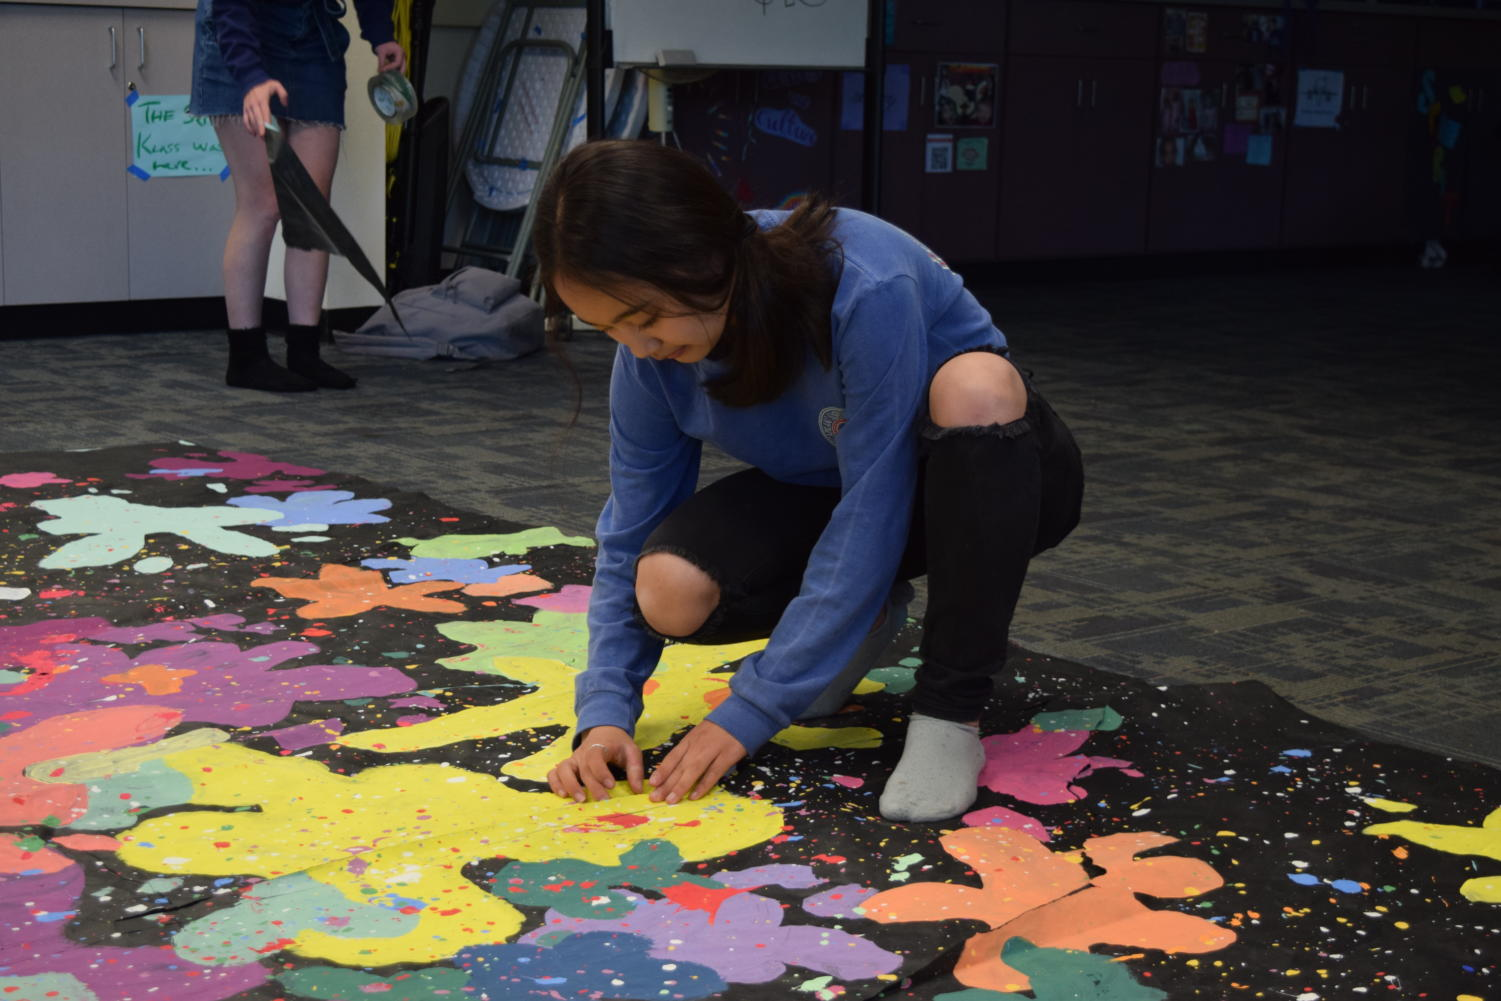 Rachel Gu, a senior and supervisor of activities in publicity, tapes up a damaged banner.